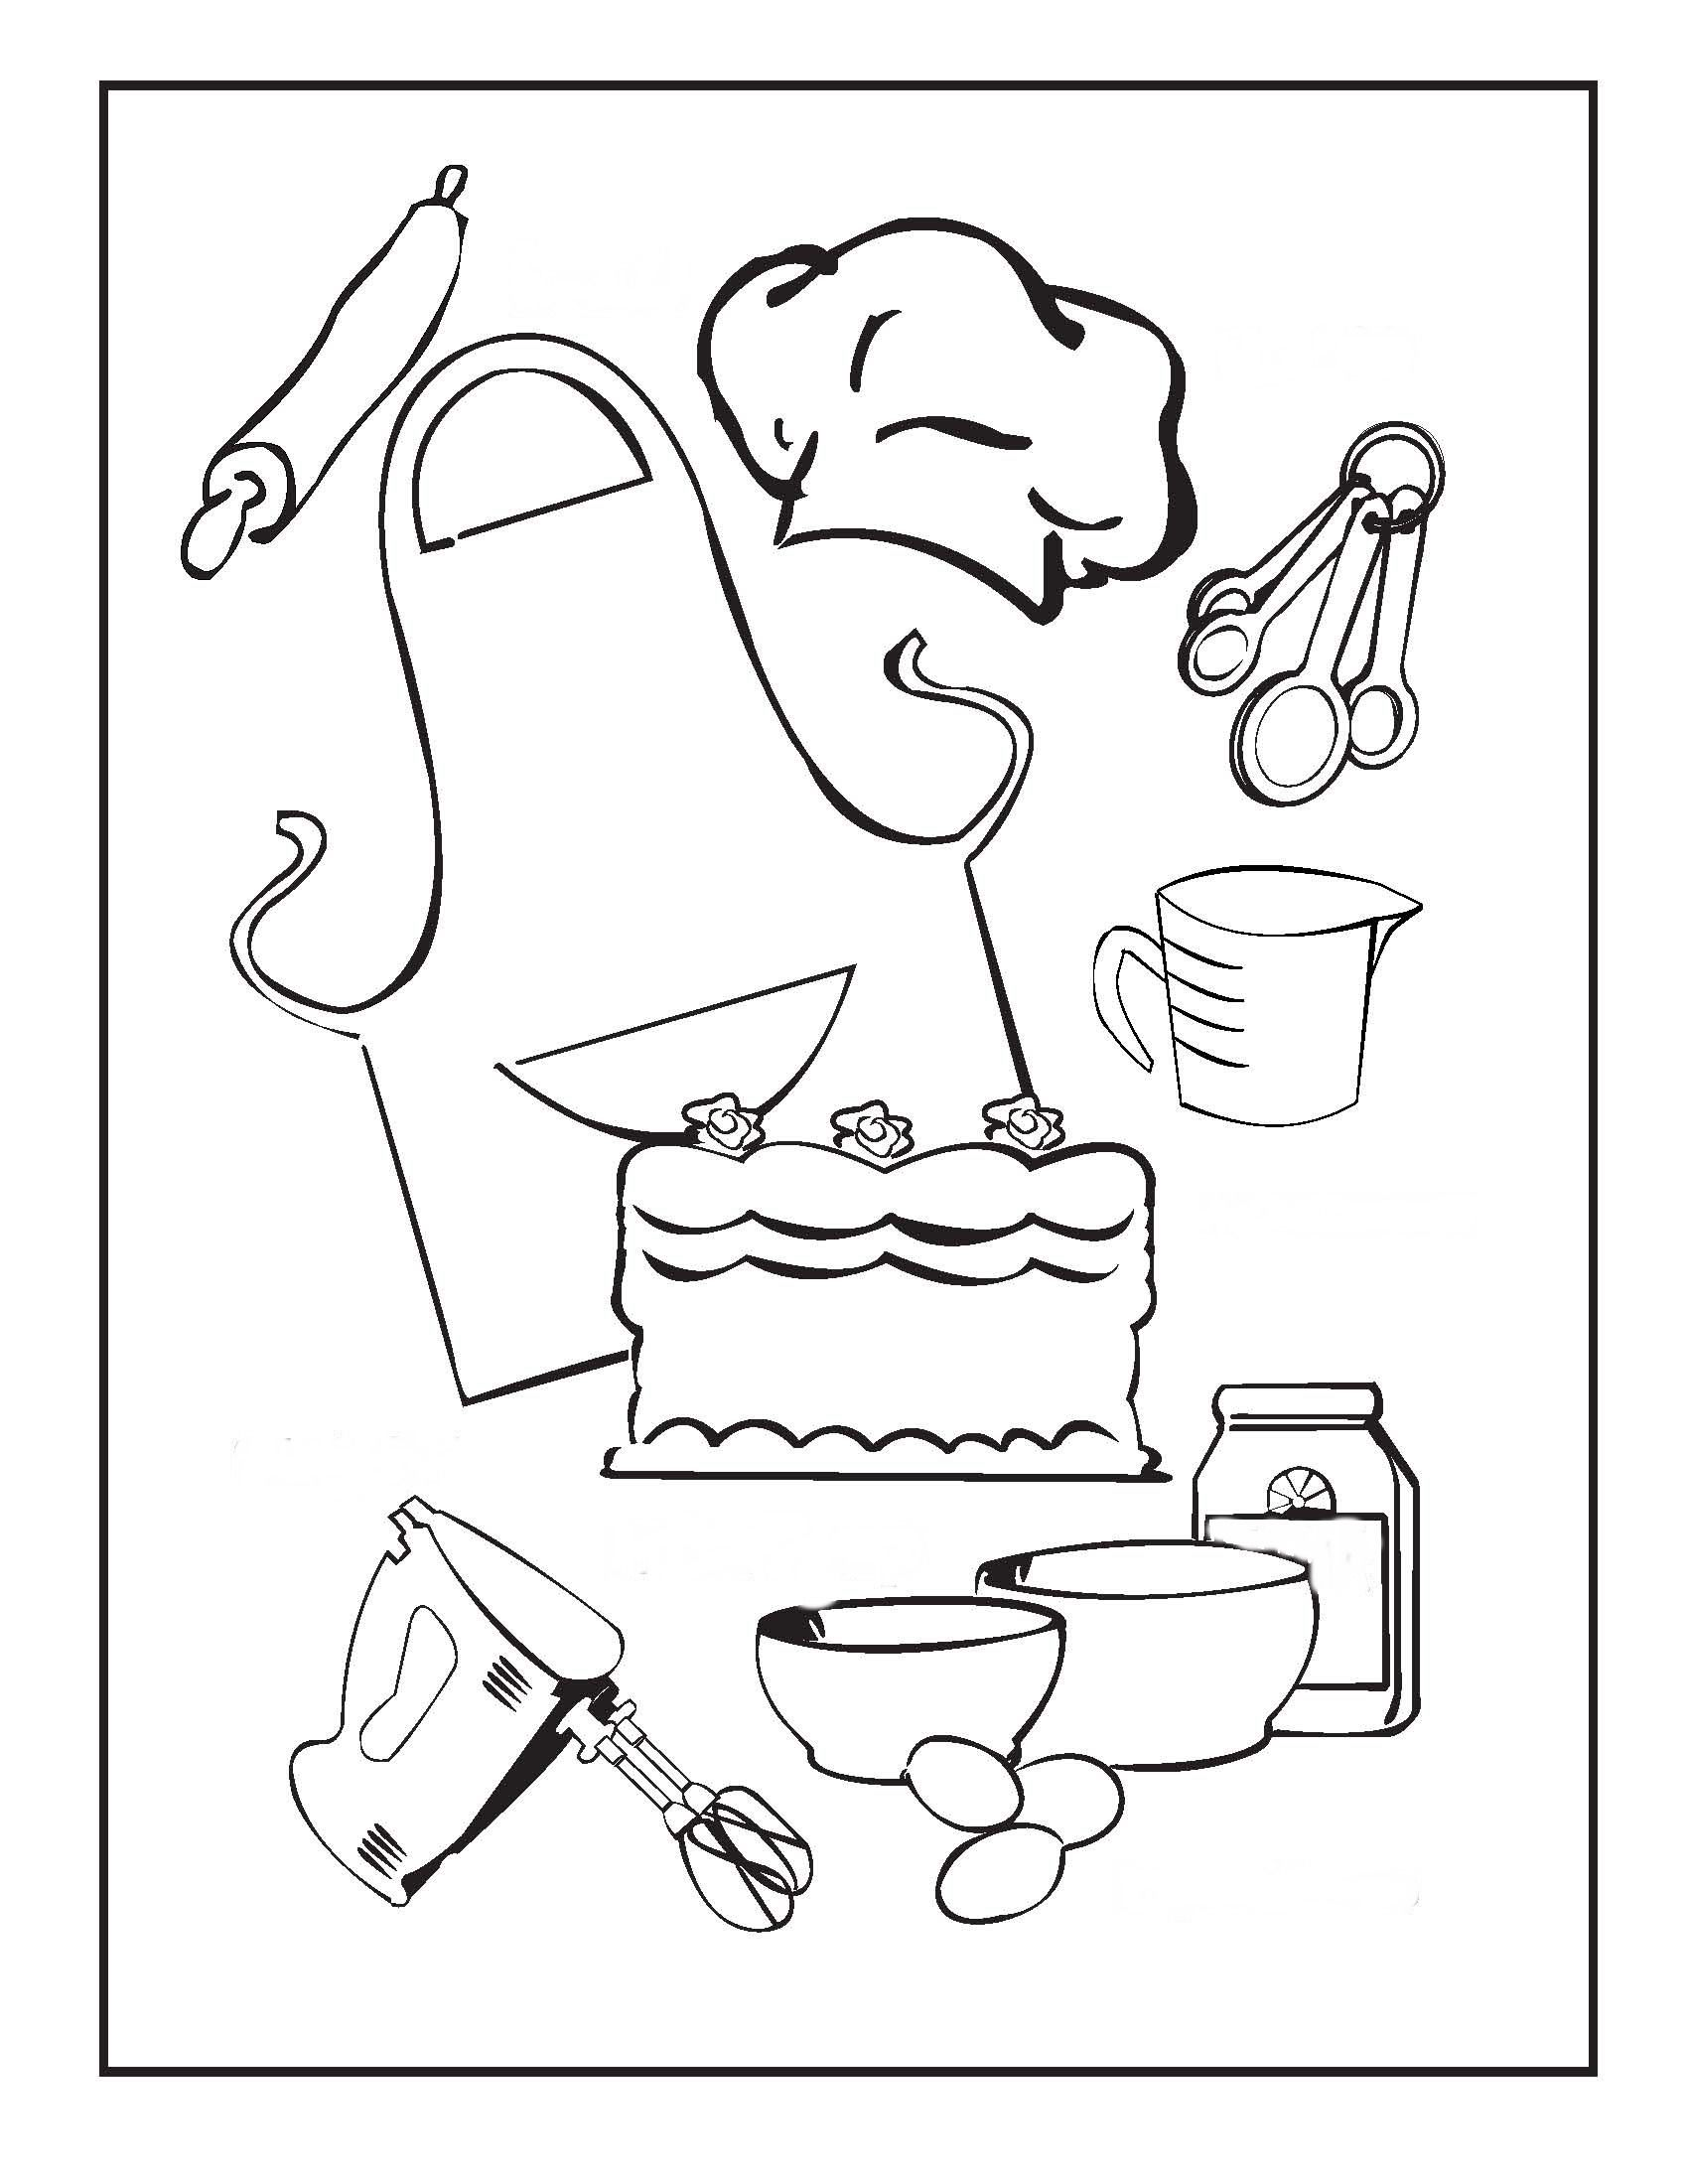 Cooking and Baking Coloring Pages Birthday Printable Recipes